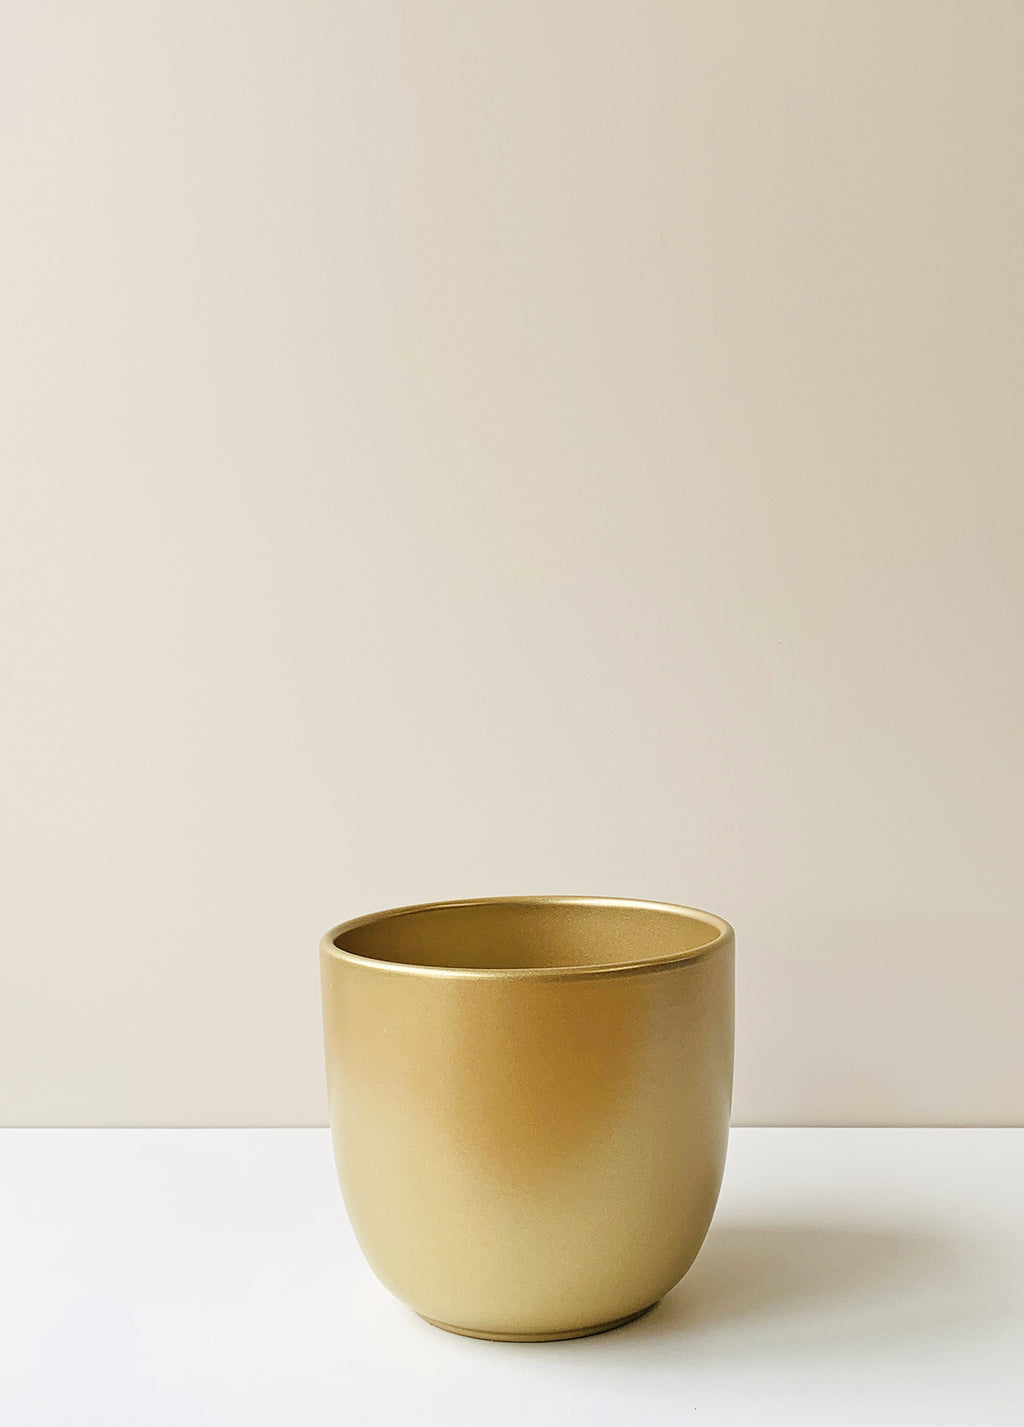 Tusca Gold Ceramic Planter